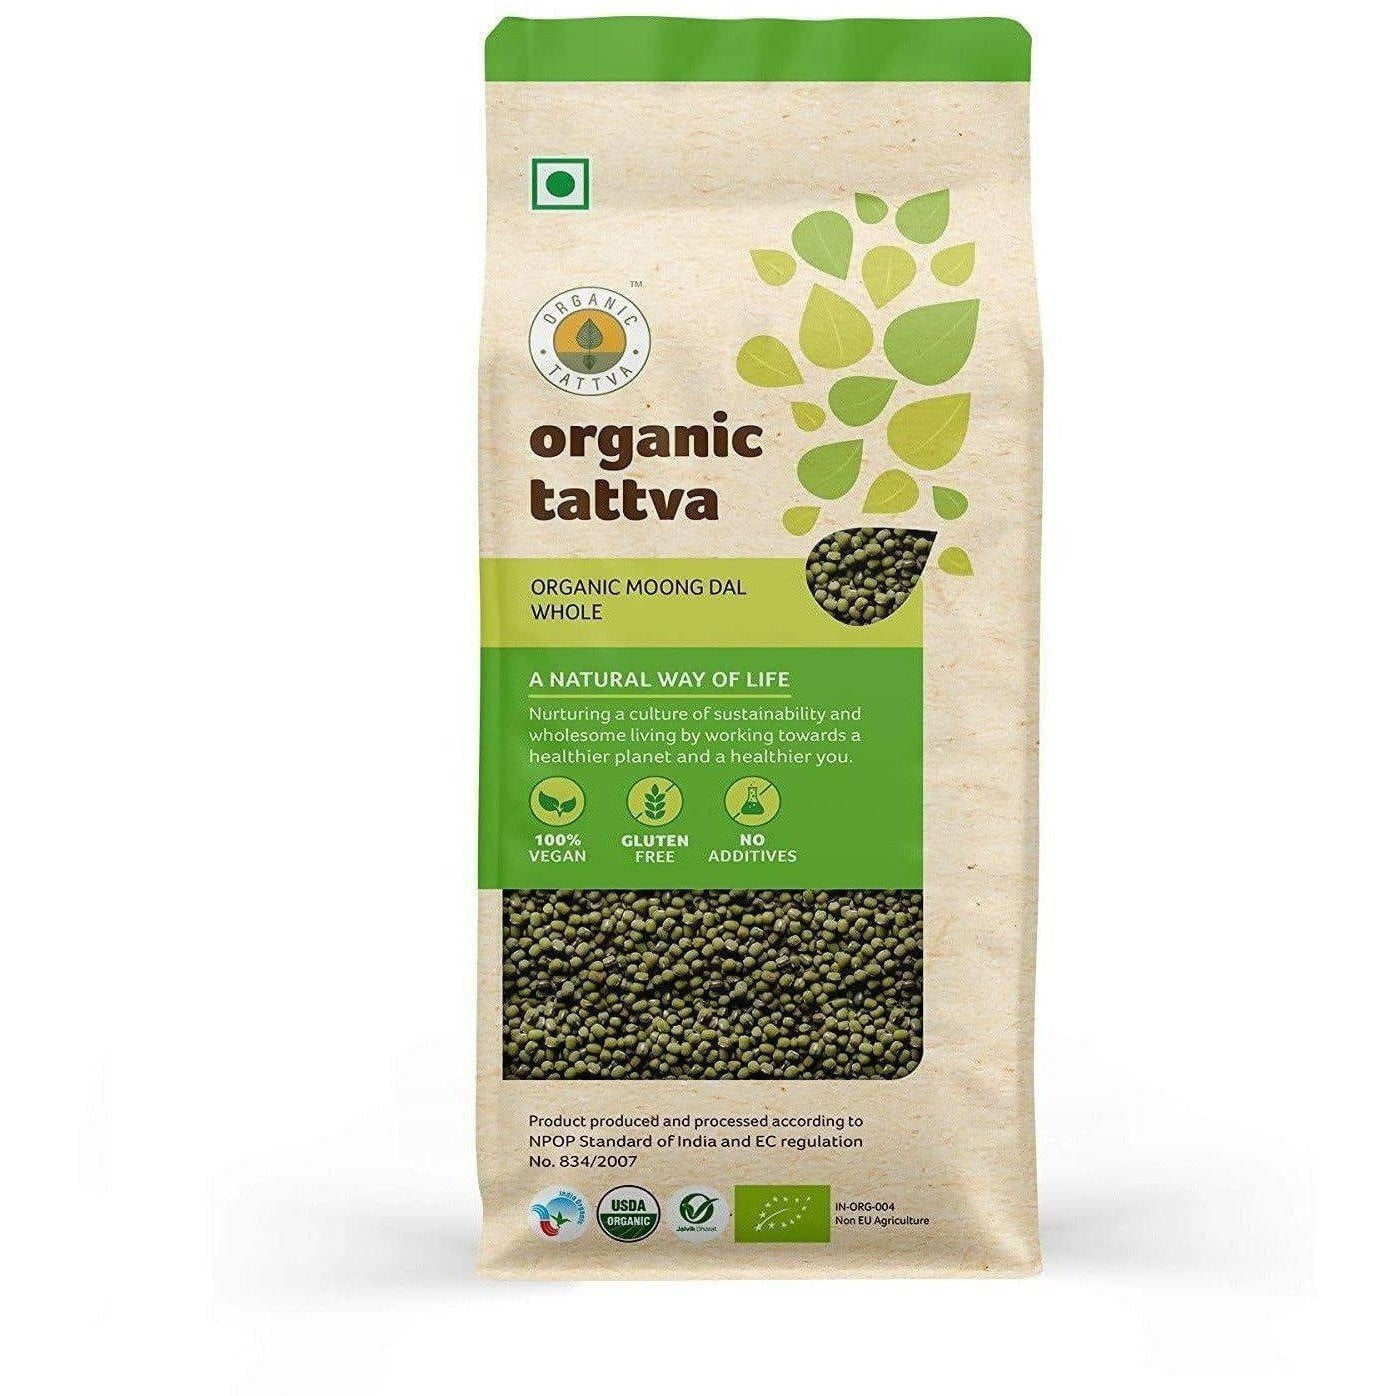 Organic Tattva Organic Moong Dal Whole